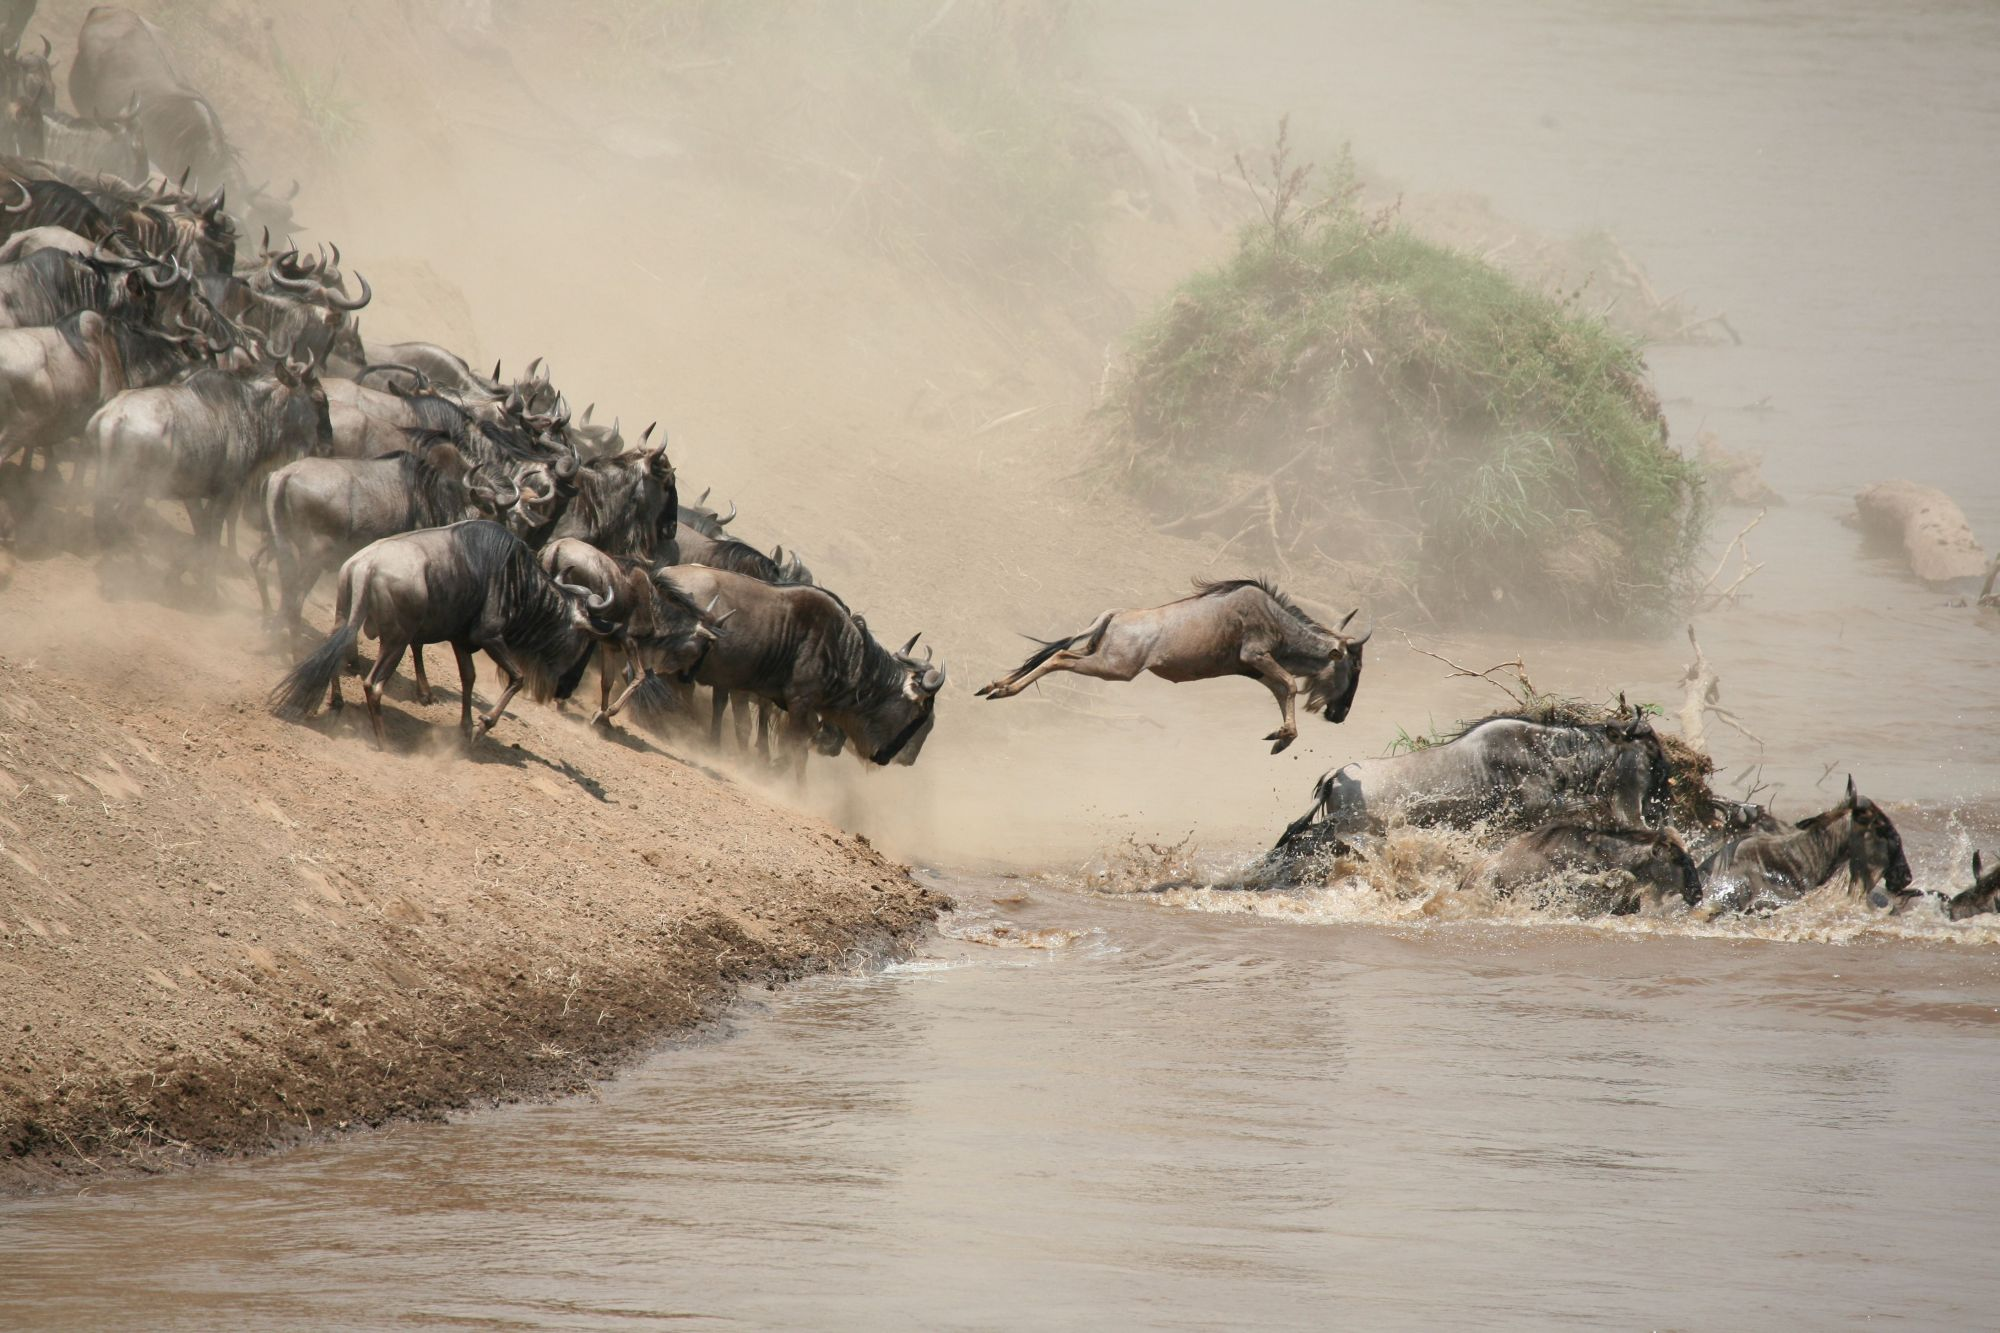 dreamstime 28033753 MARA RIVER CROSSING